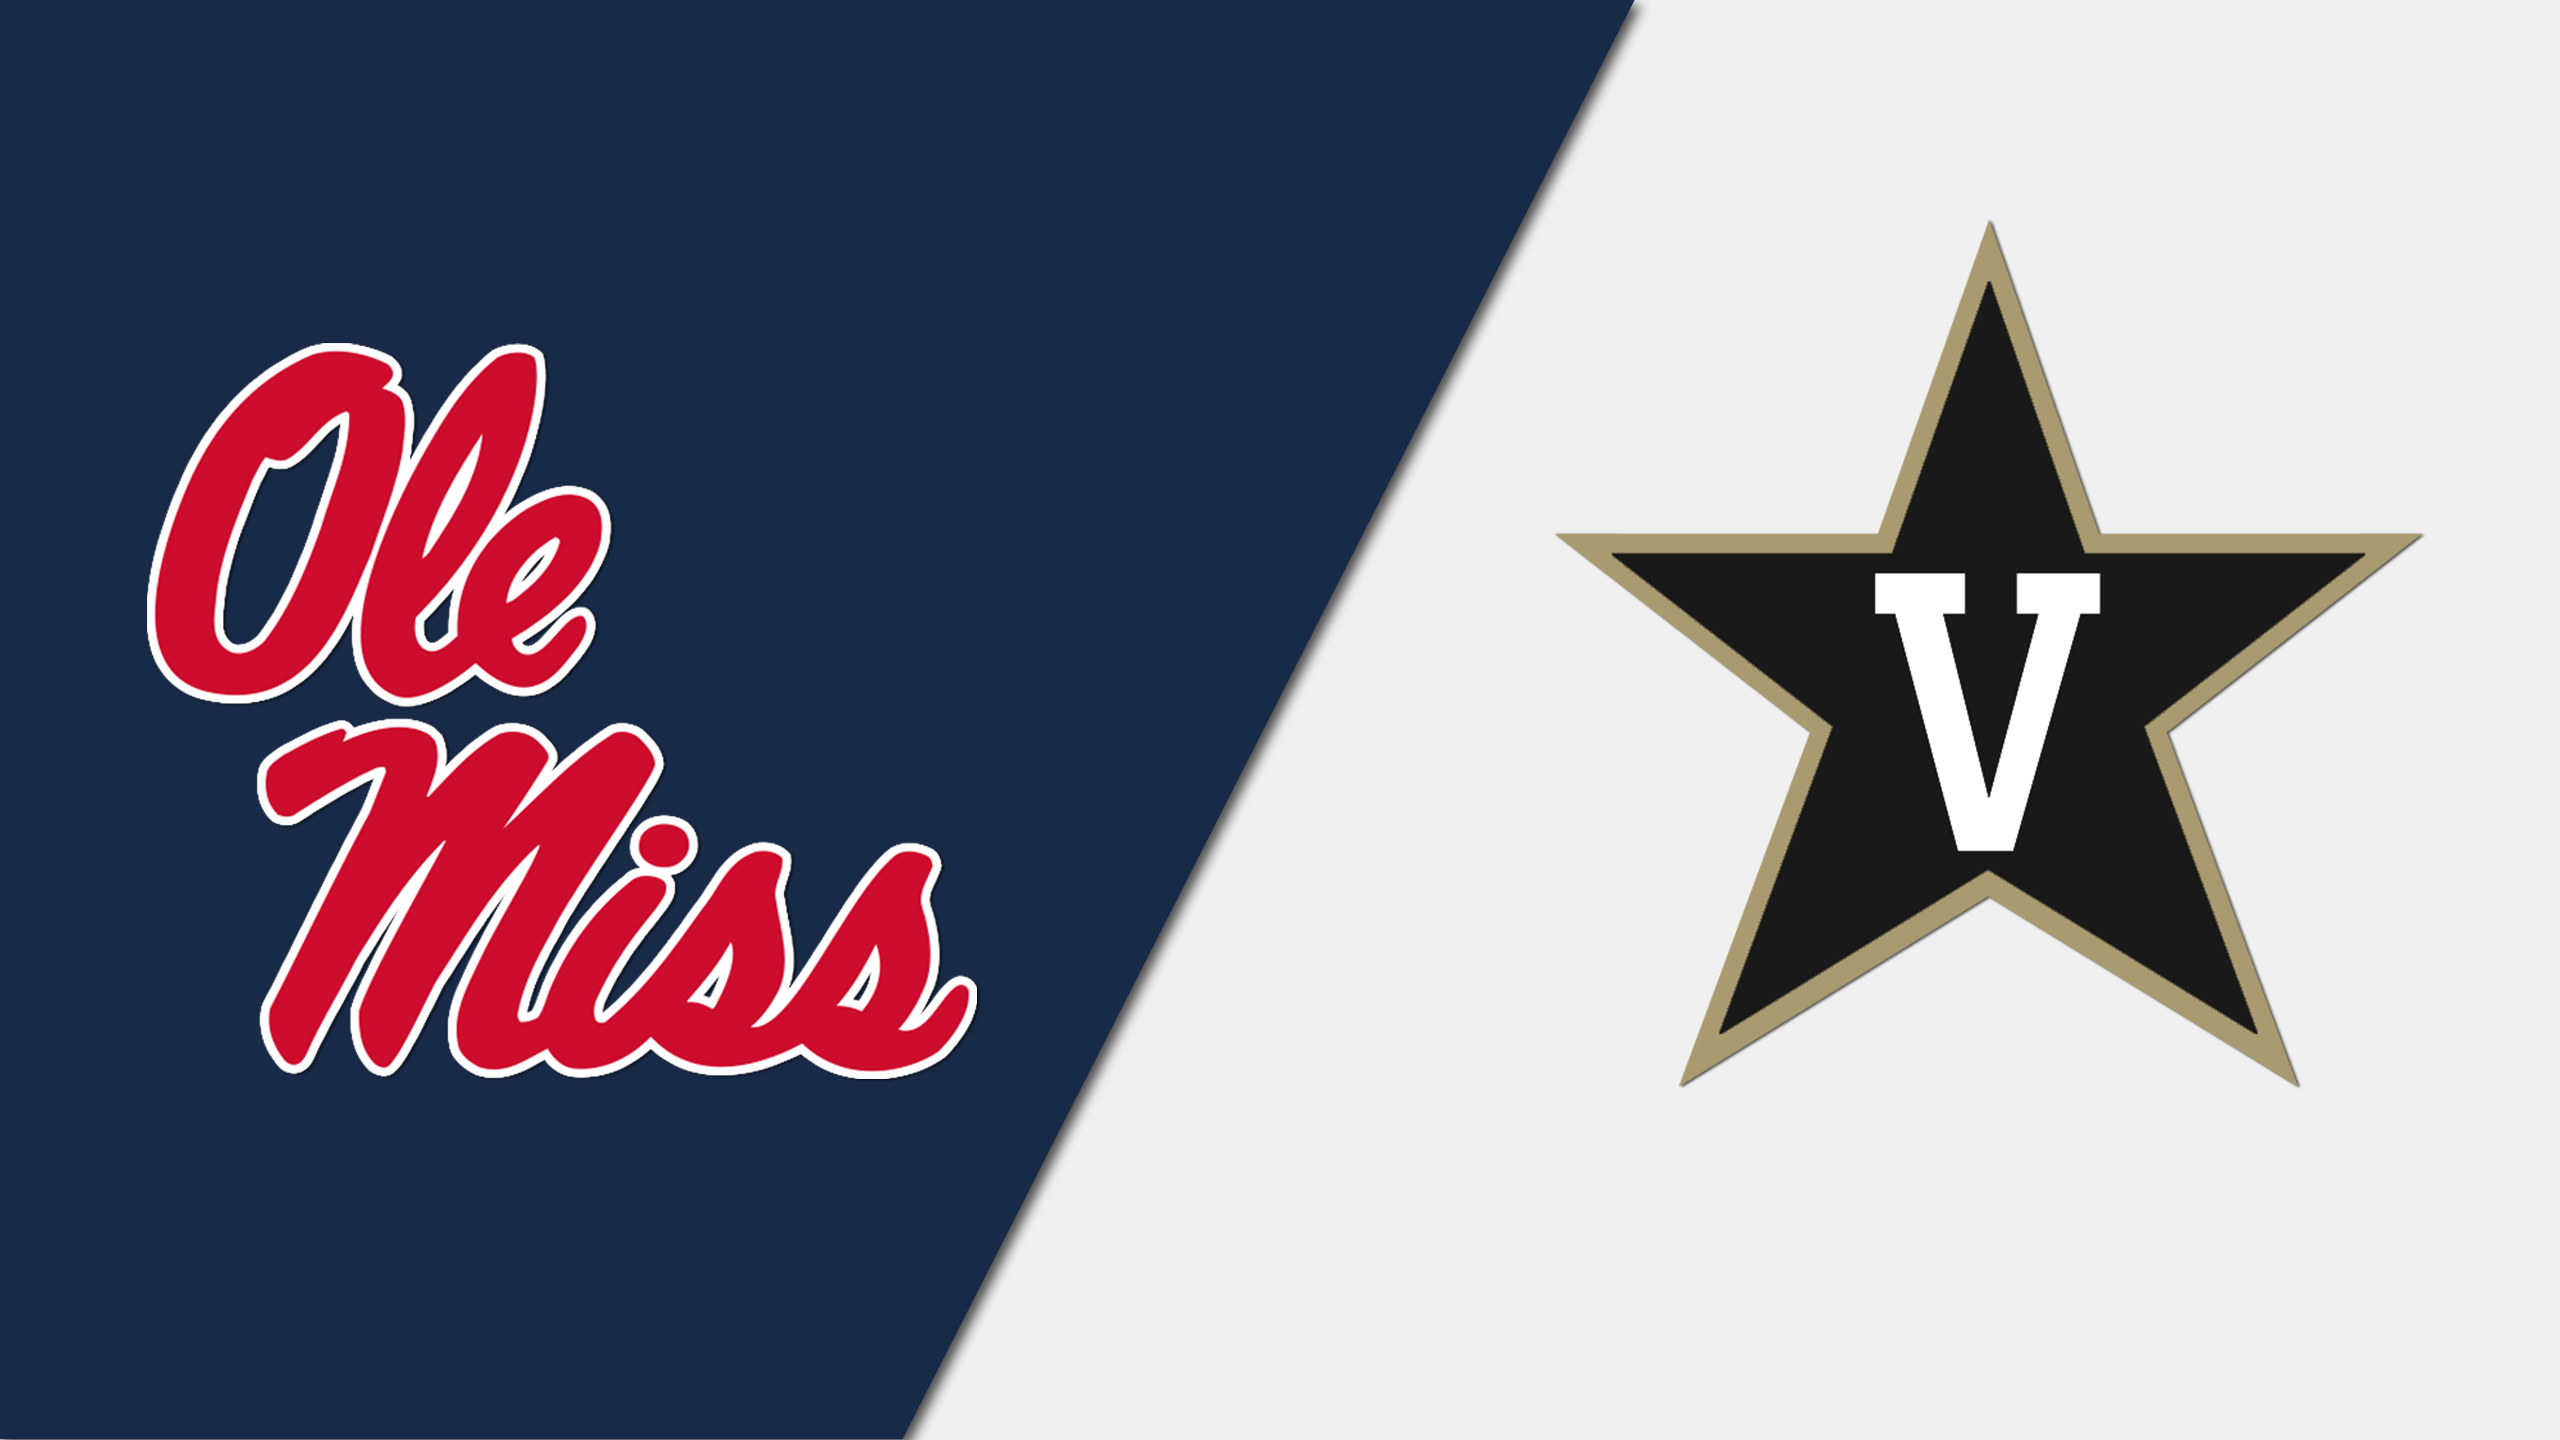 Ole Miss vs. Vanderbilt (Championship) (re-air)